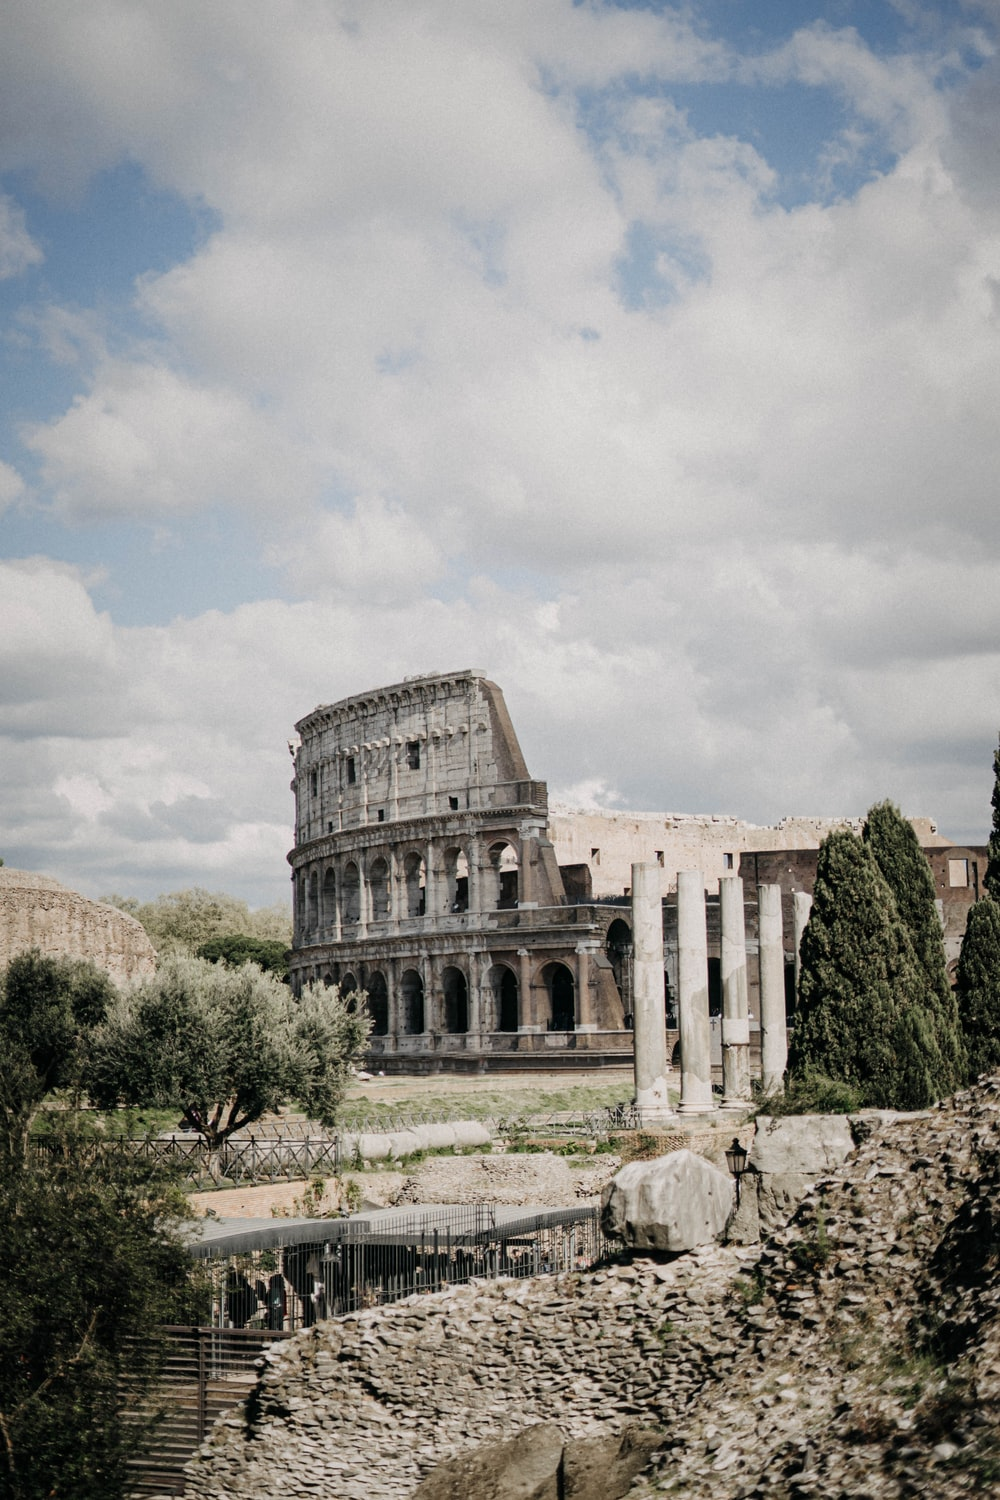 people standing near Colosseum in Rome, Italy under white and blue skies during daytime